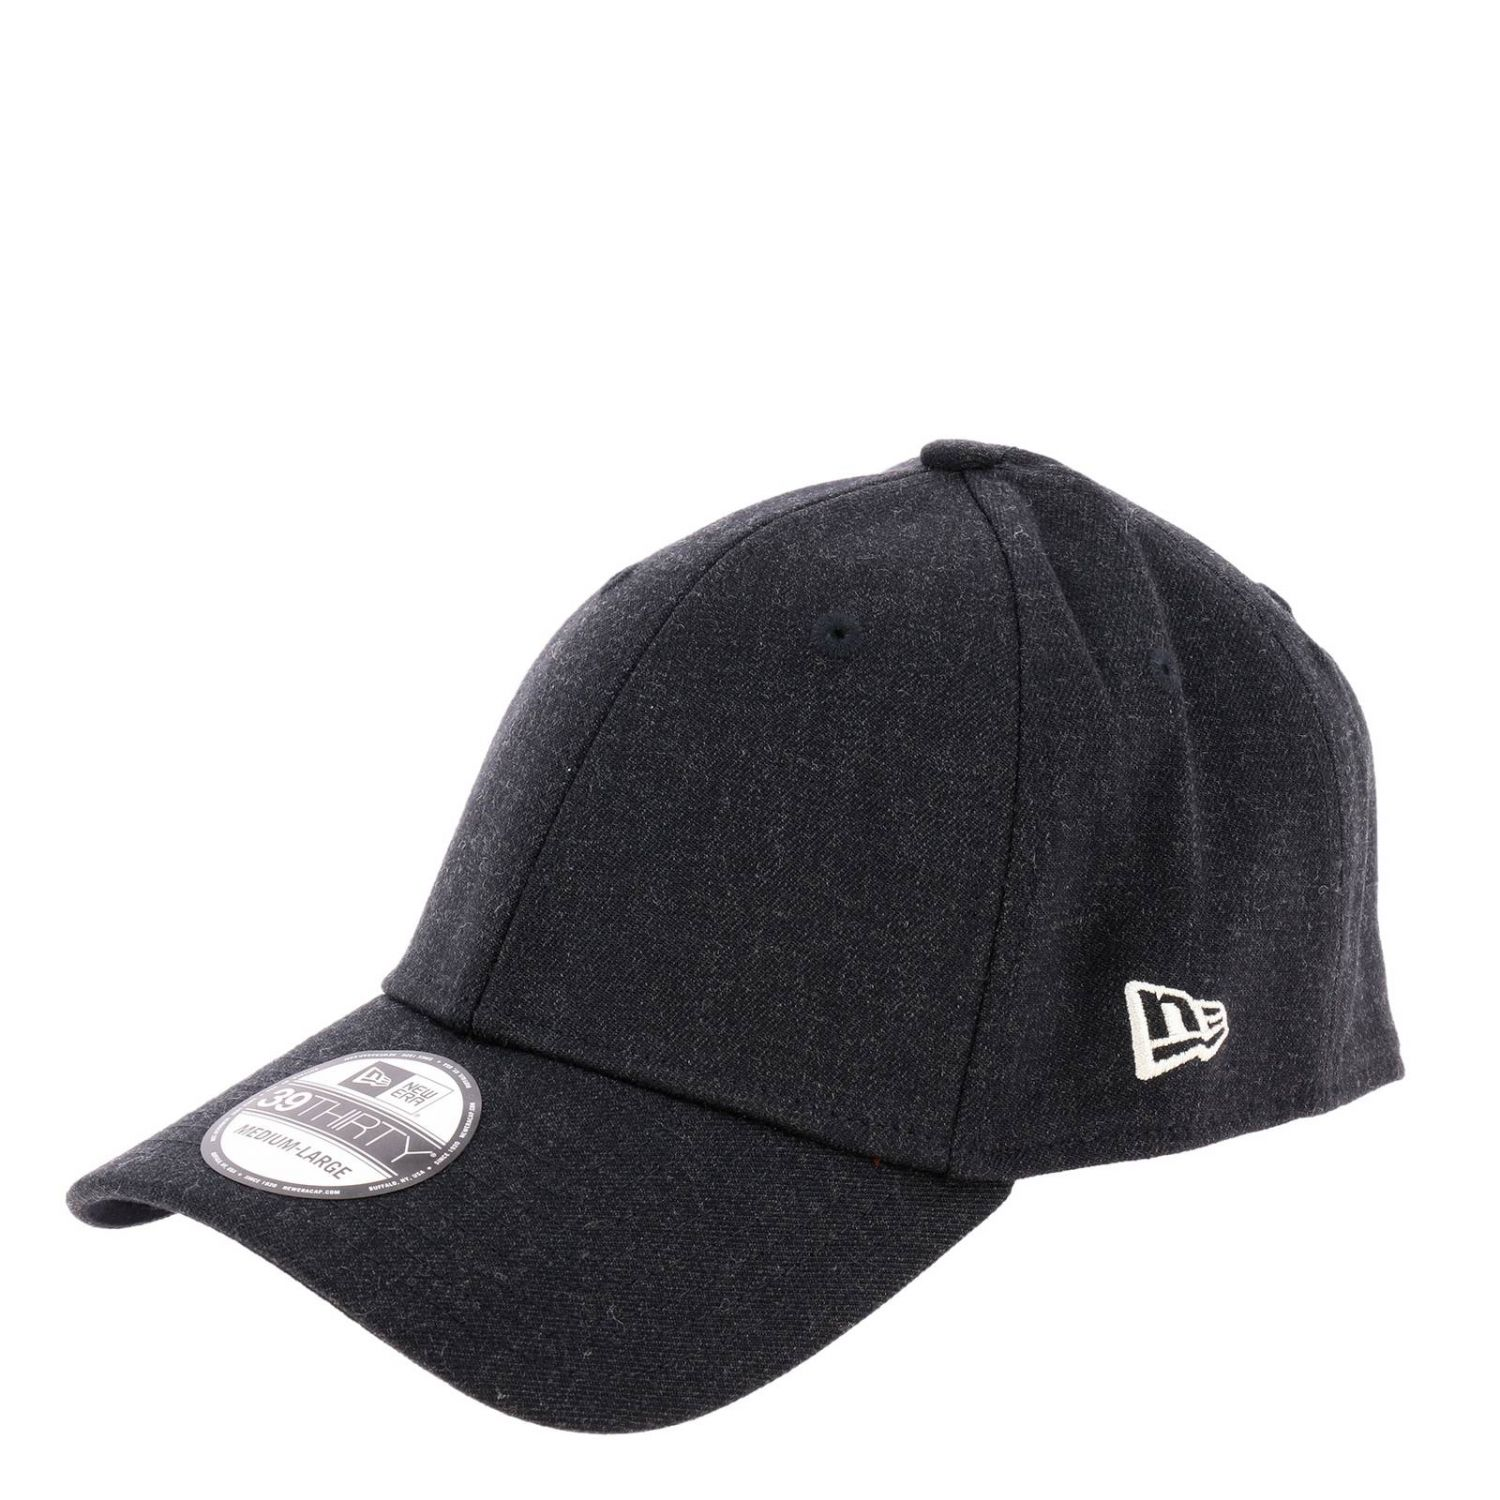 Cappello da baseball Ne heather 39thirty New Era nero 1